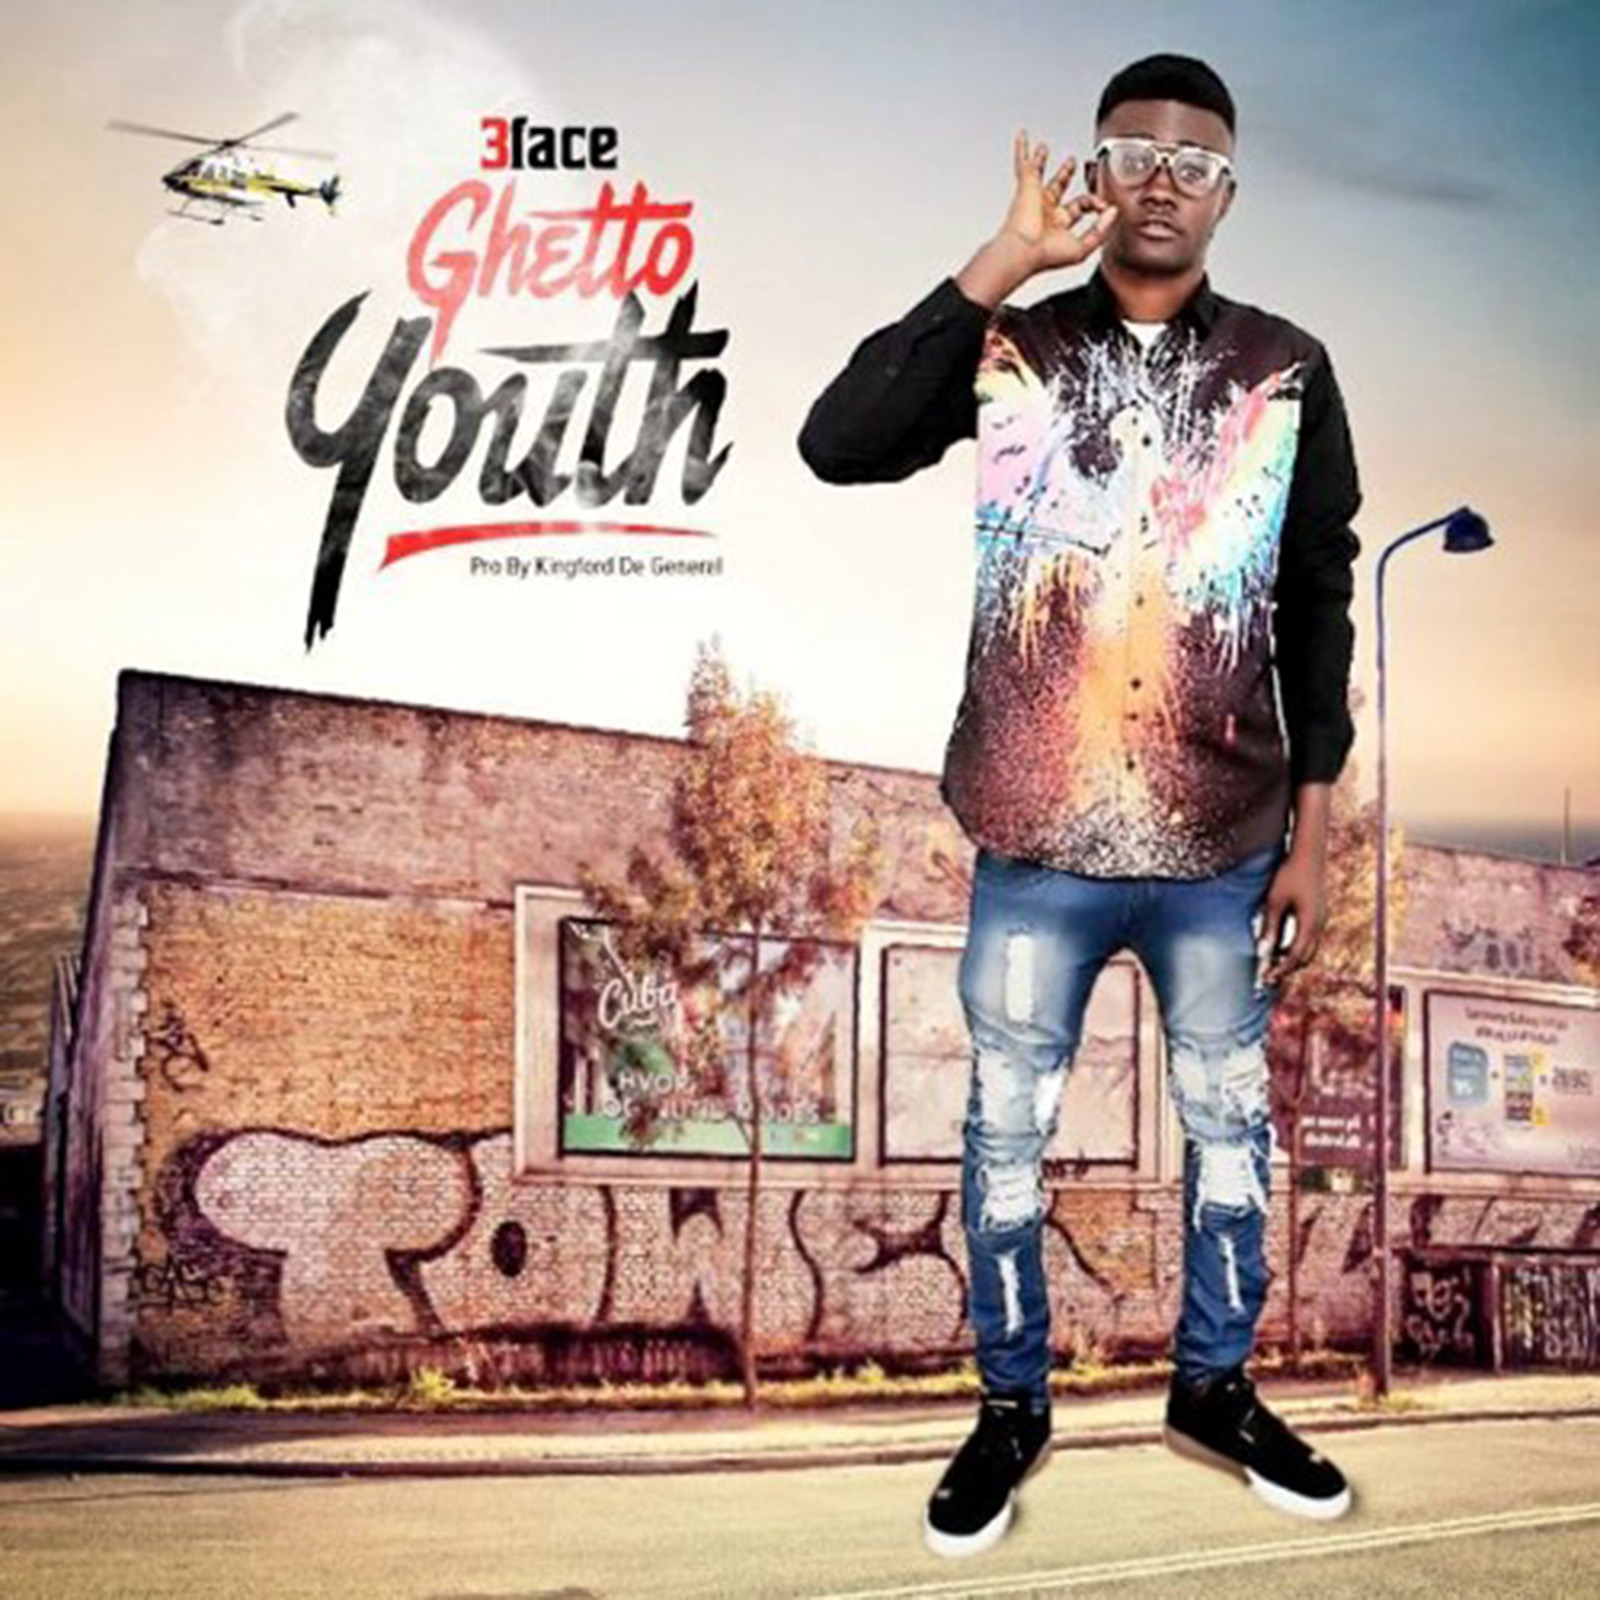 Ghetto Youth by 3 Face